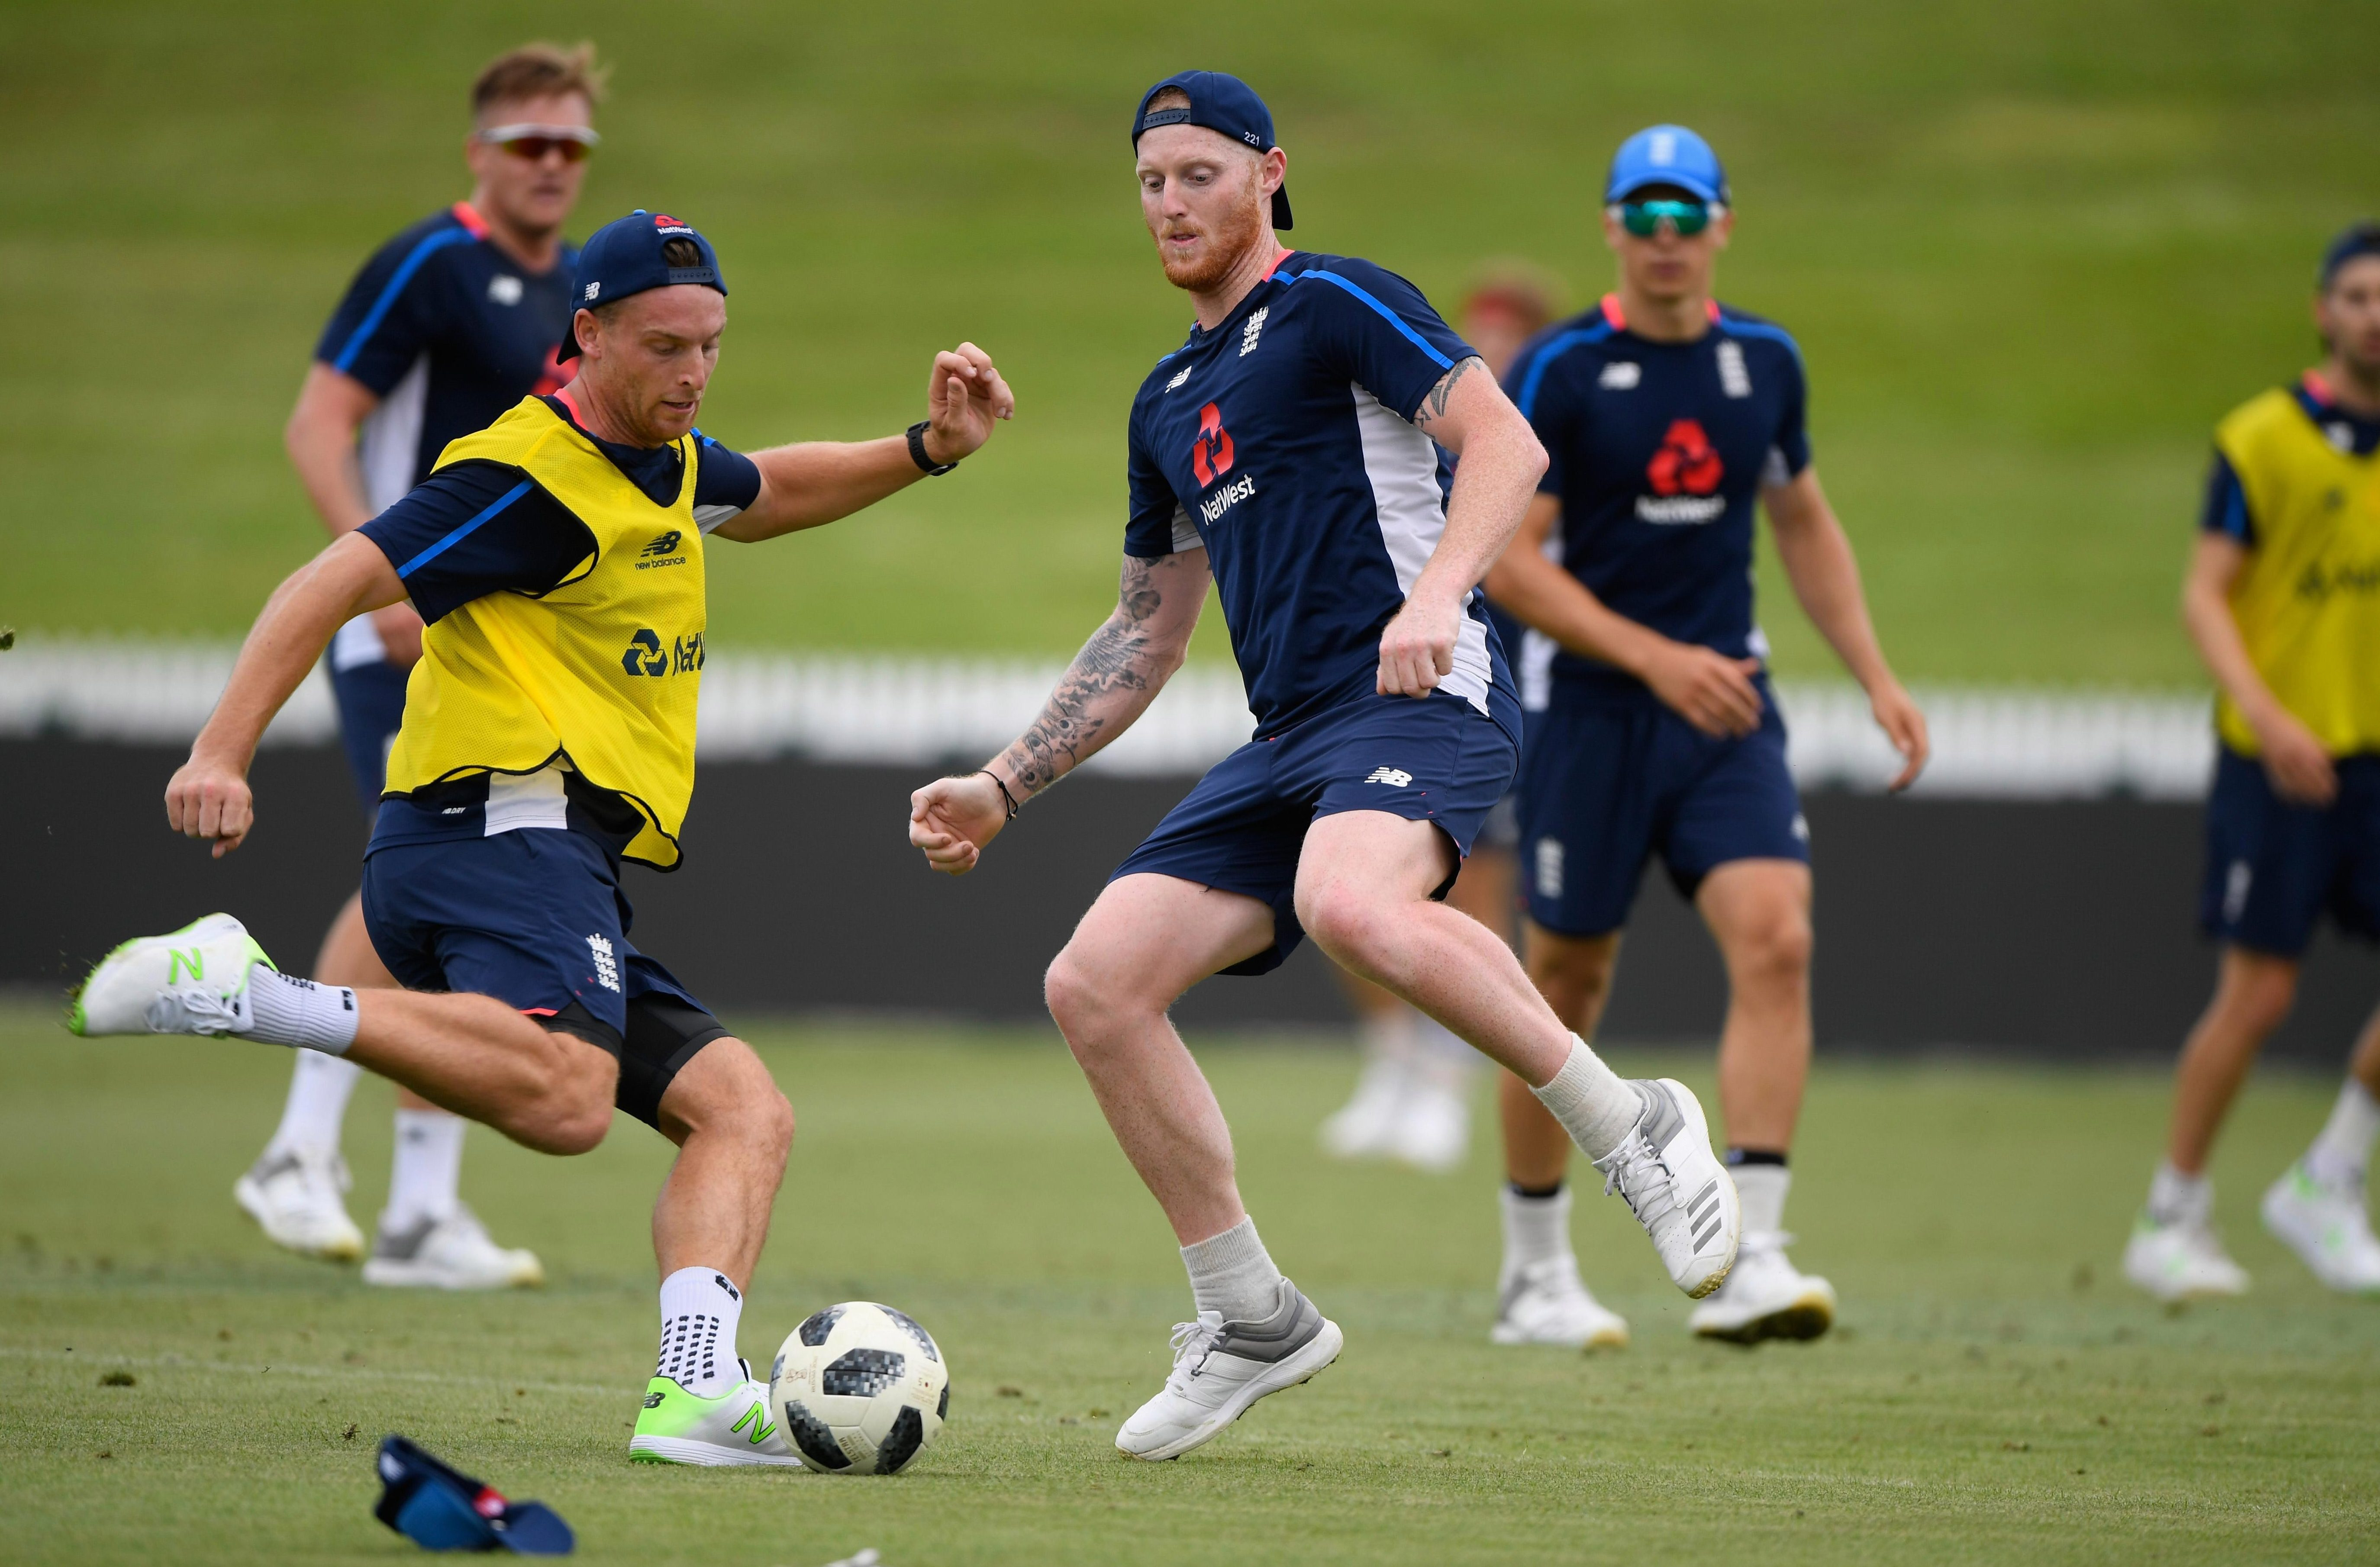 England's cricketers play a game of football in training